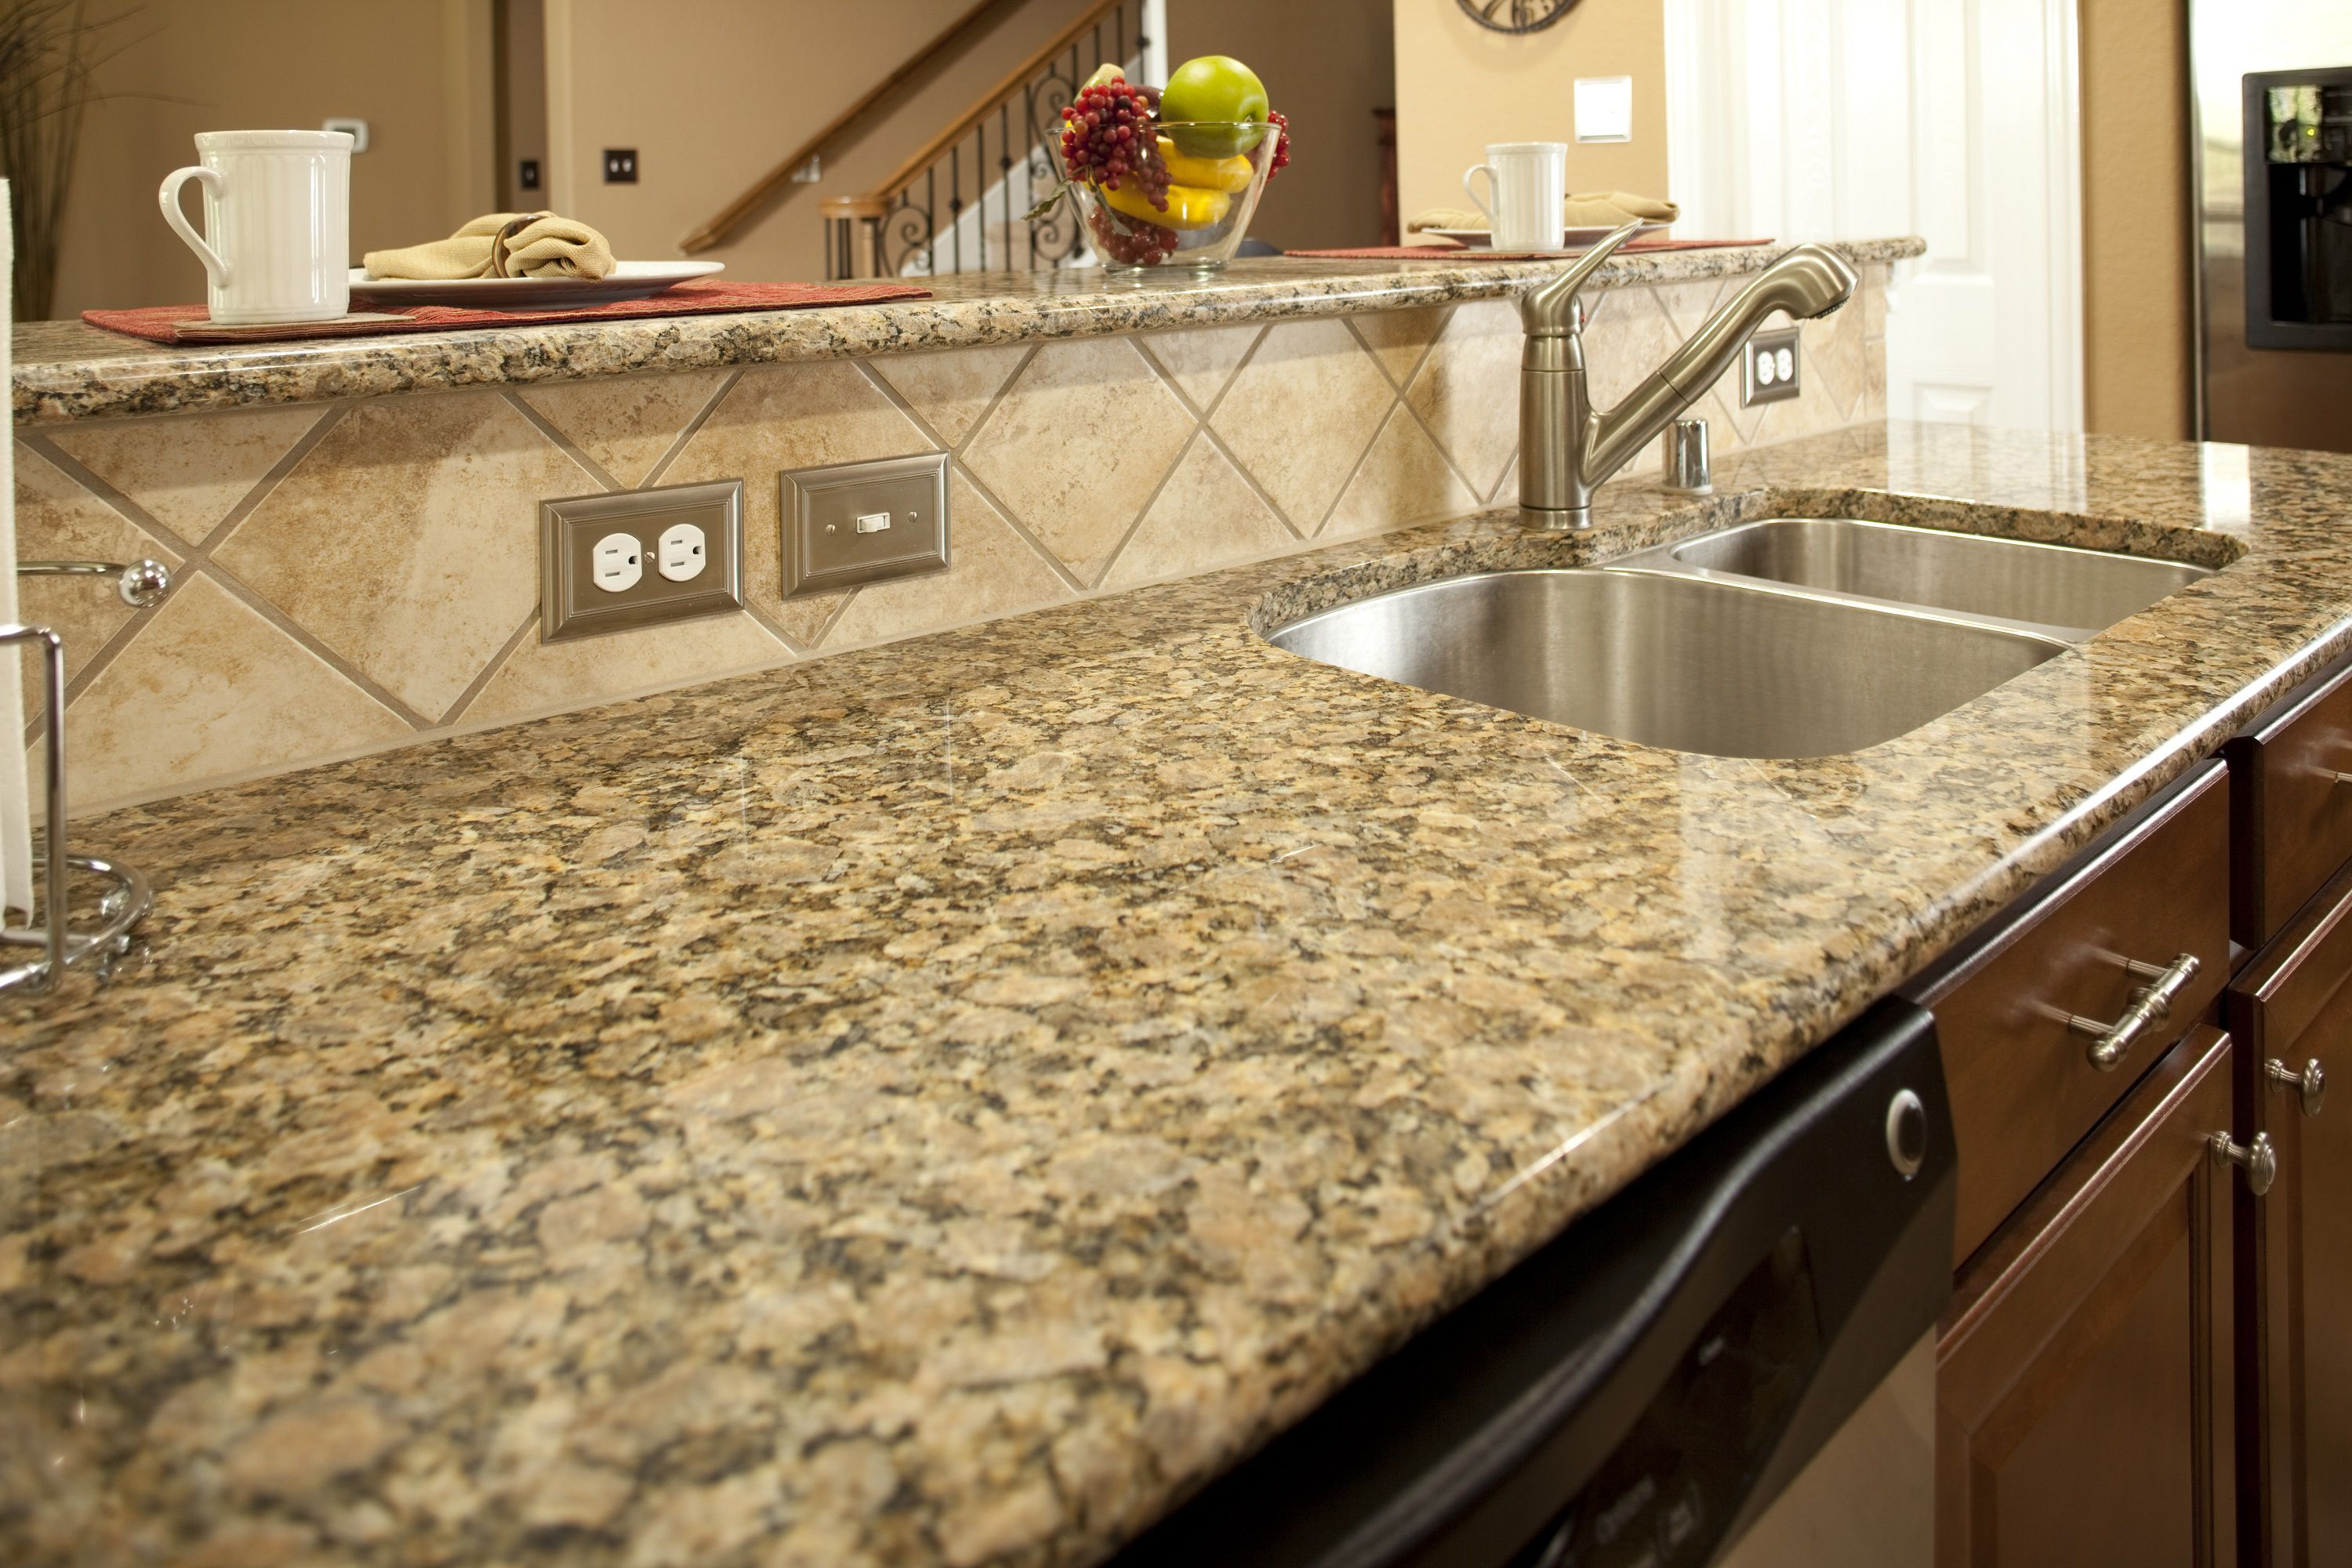 fit max kitchn countertops sealing clean how countertop w from disinfect and granite to the lessons cleaning